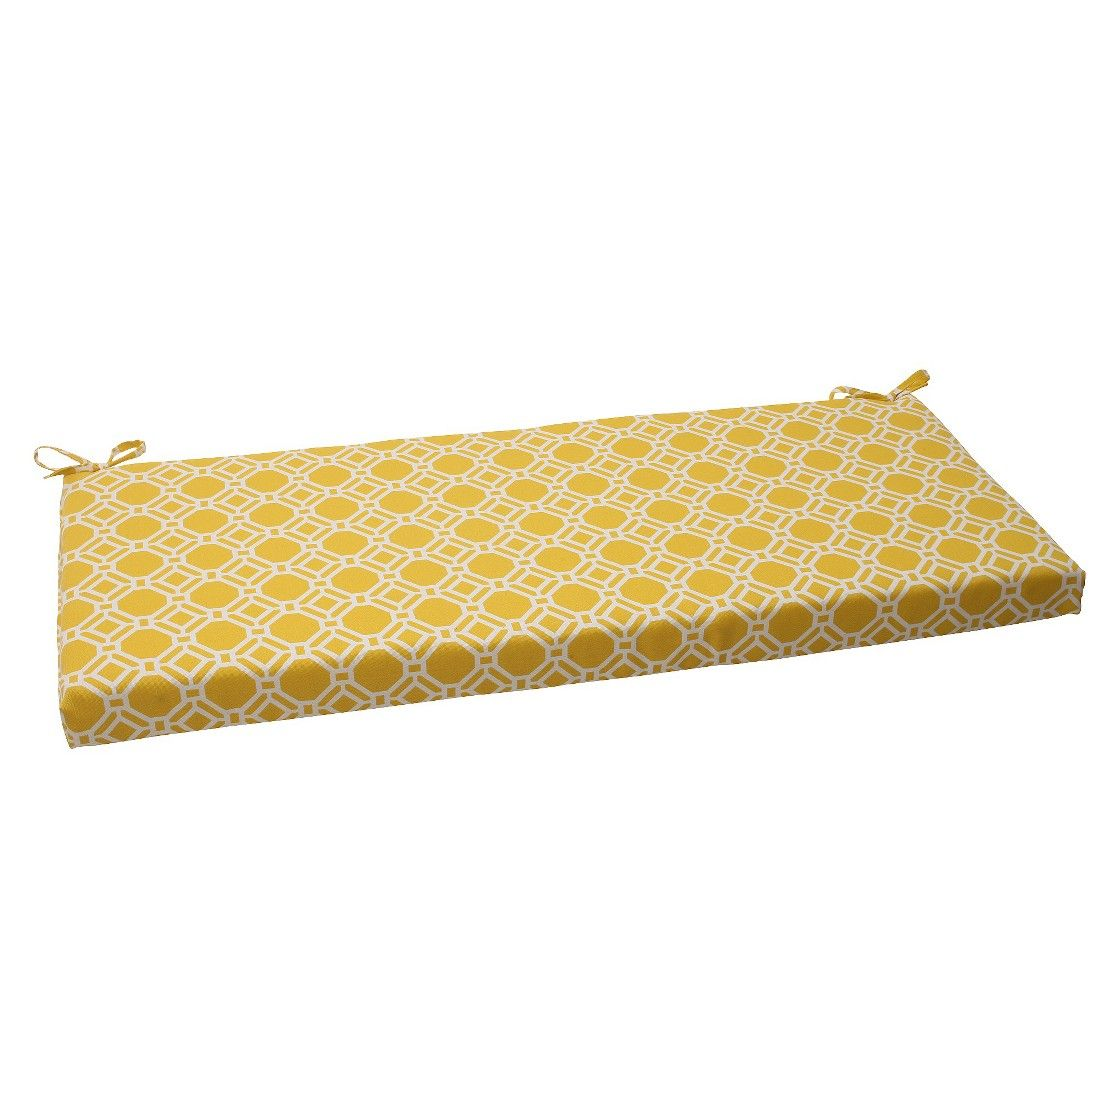 Outdoor Bench Cushion Yellow White Rossmere Geometric Adult